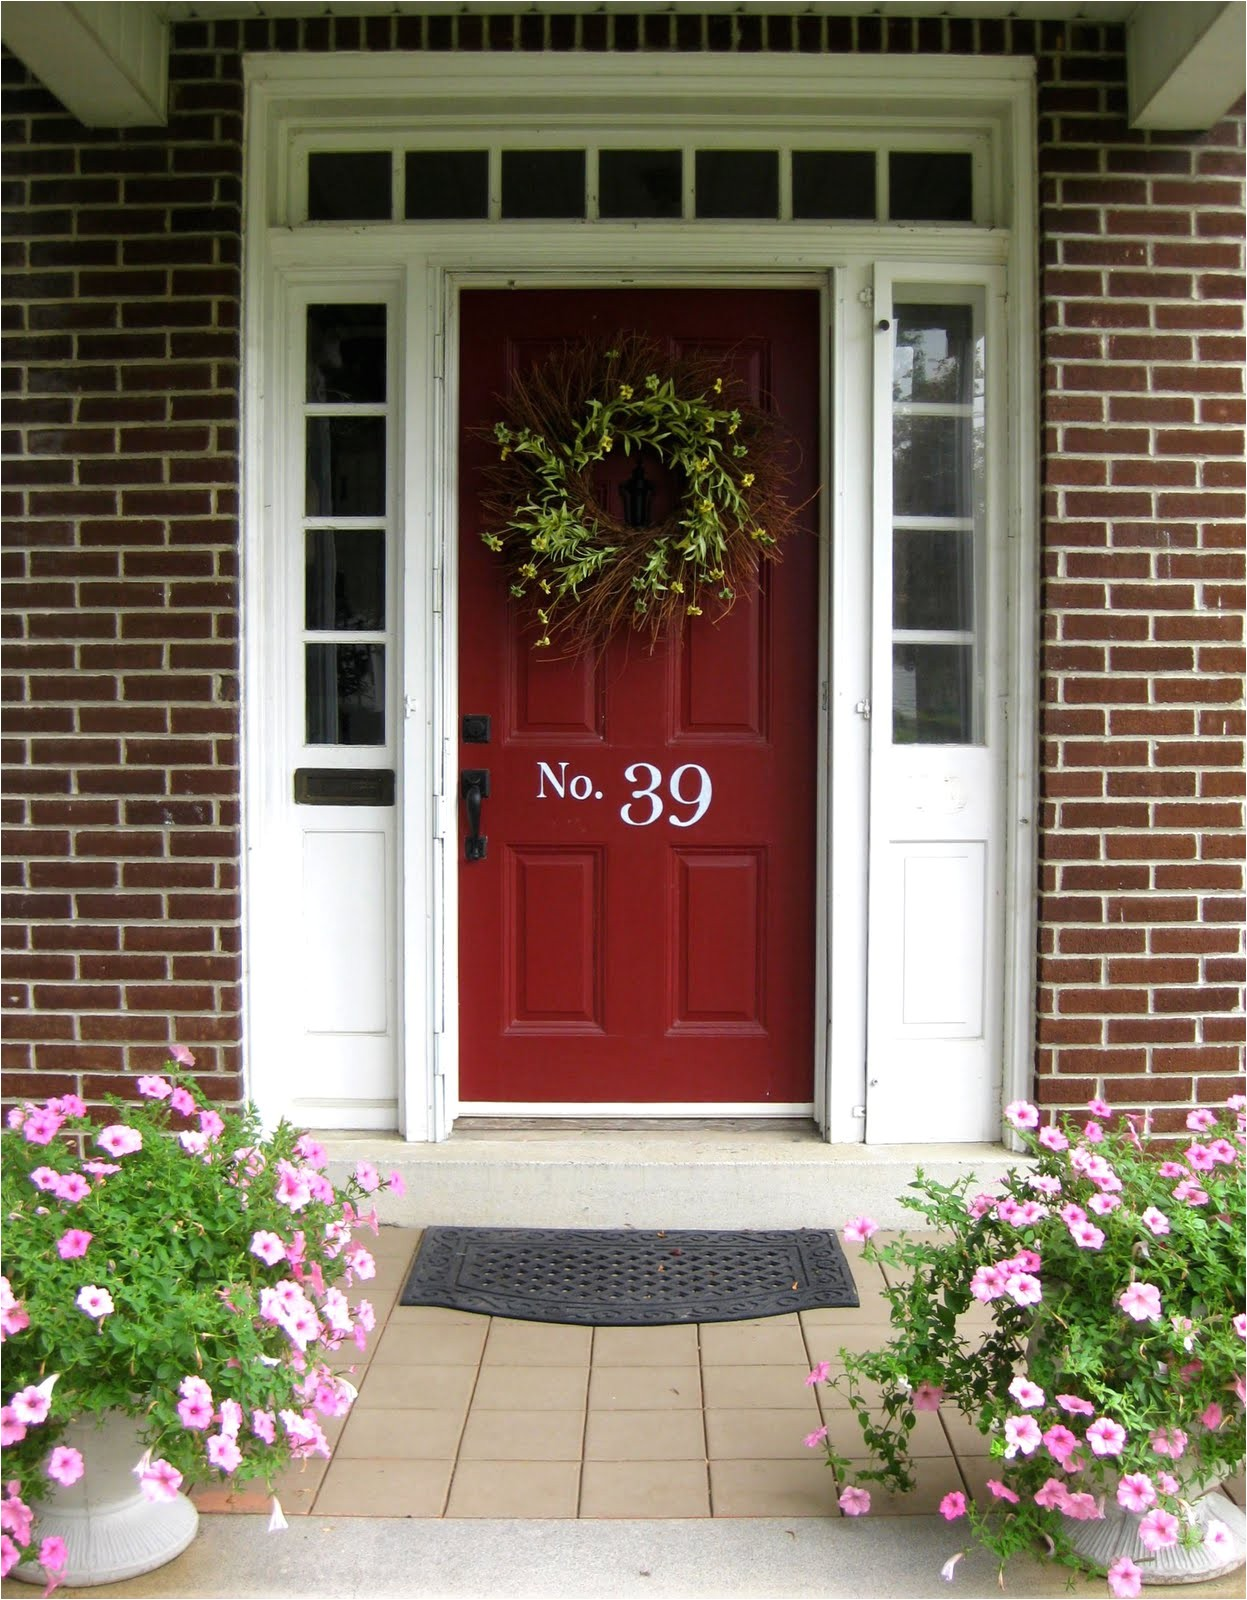 educational coloring front door red 80 lowes front door red paint red front door and